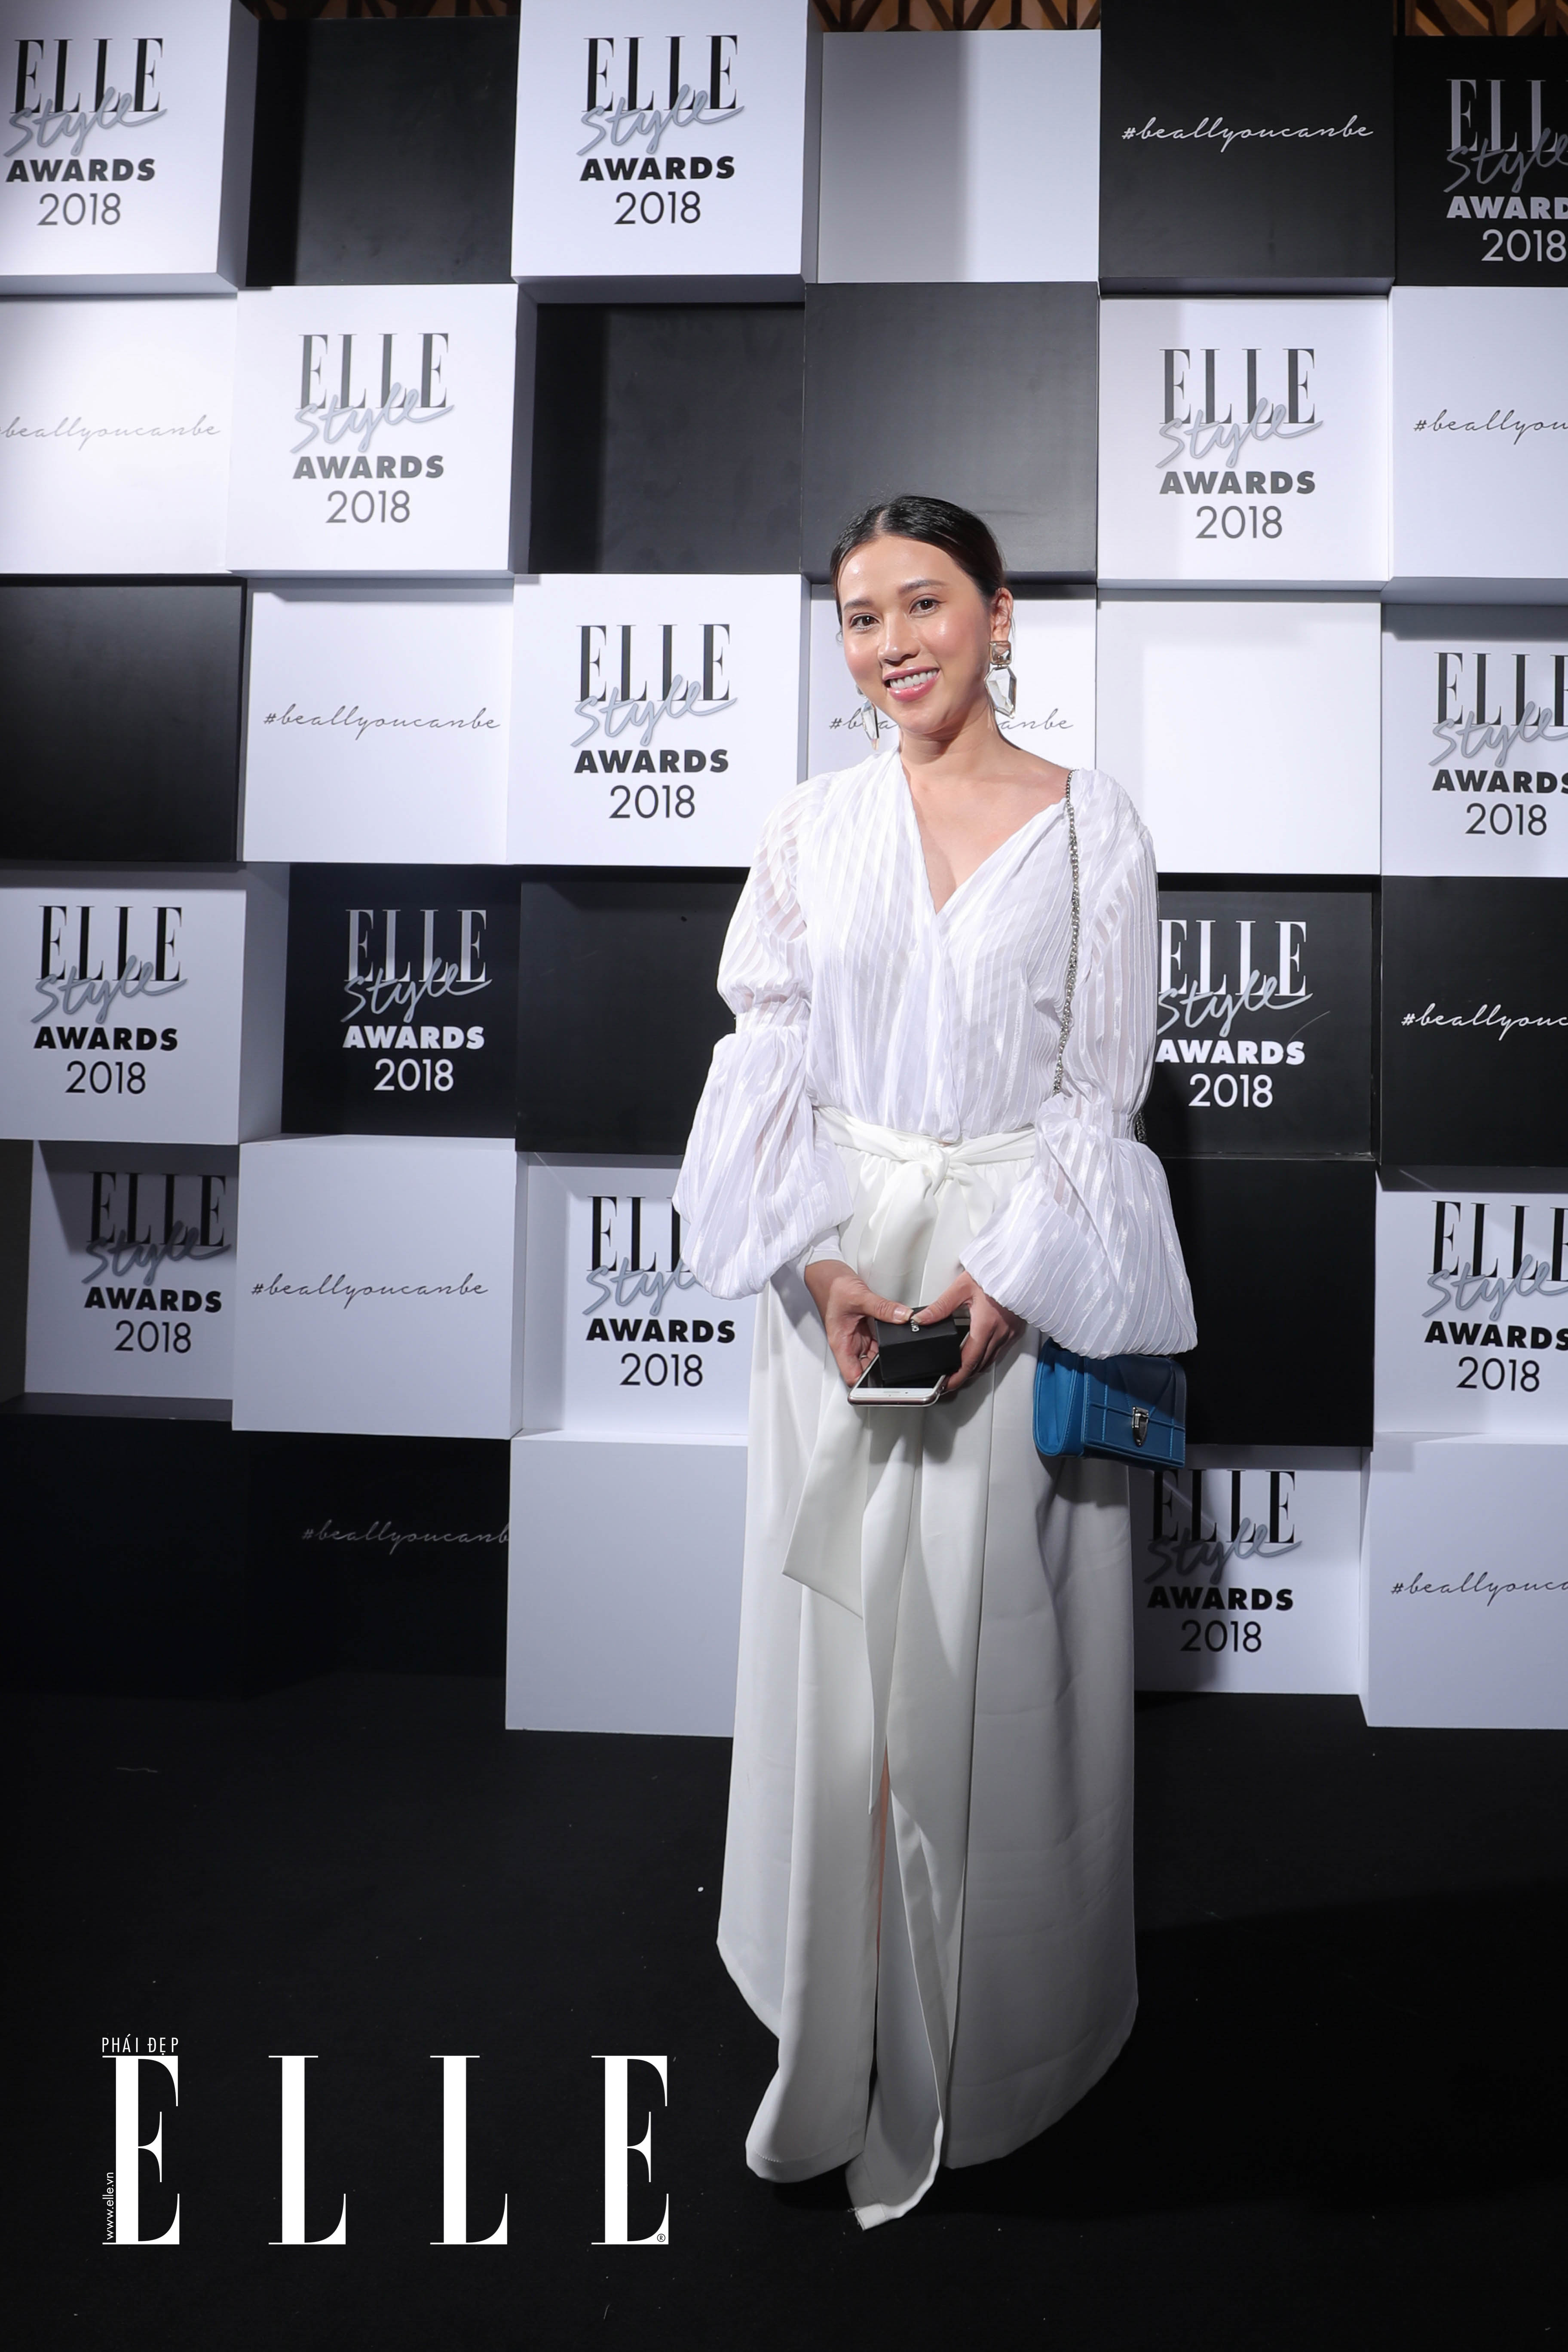 elle style awards elle man dong thuy tien